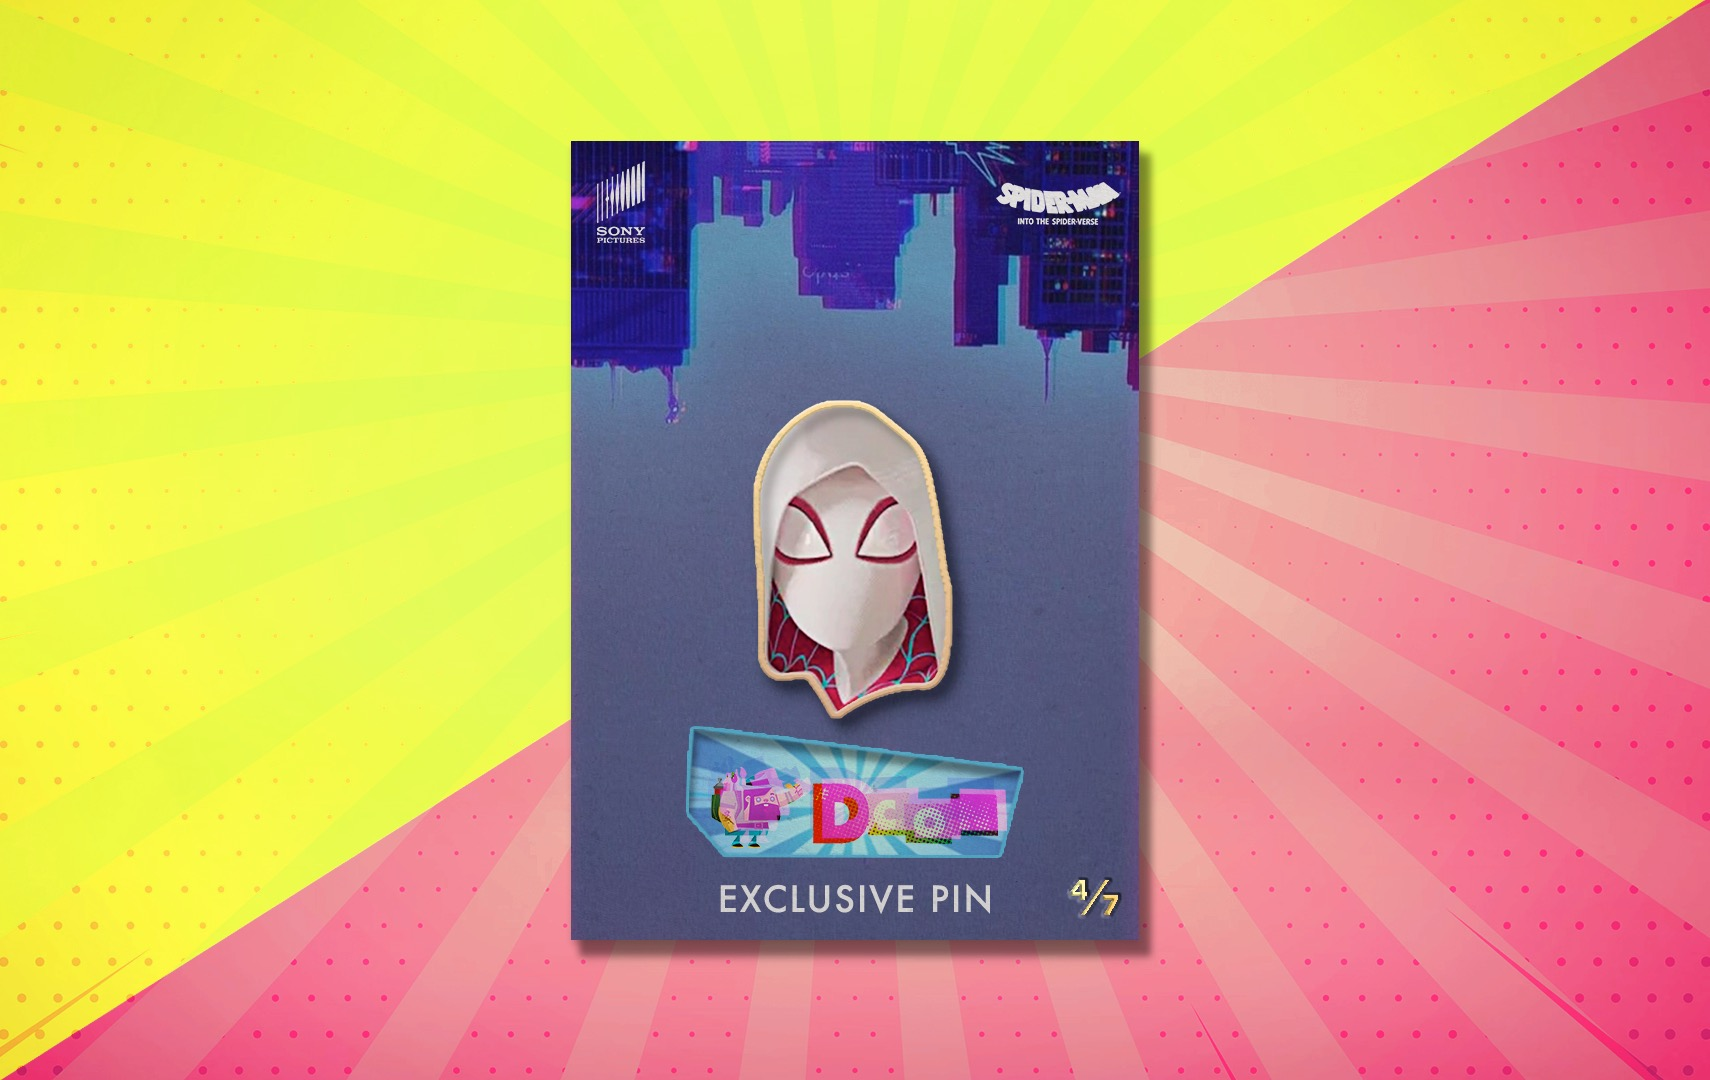 DC_DCon_Deck_Spiderverse_Pin_04.jpeg